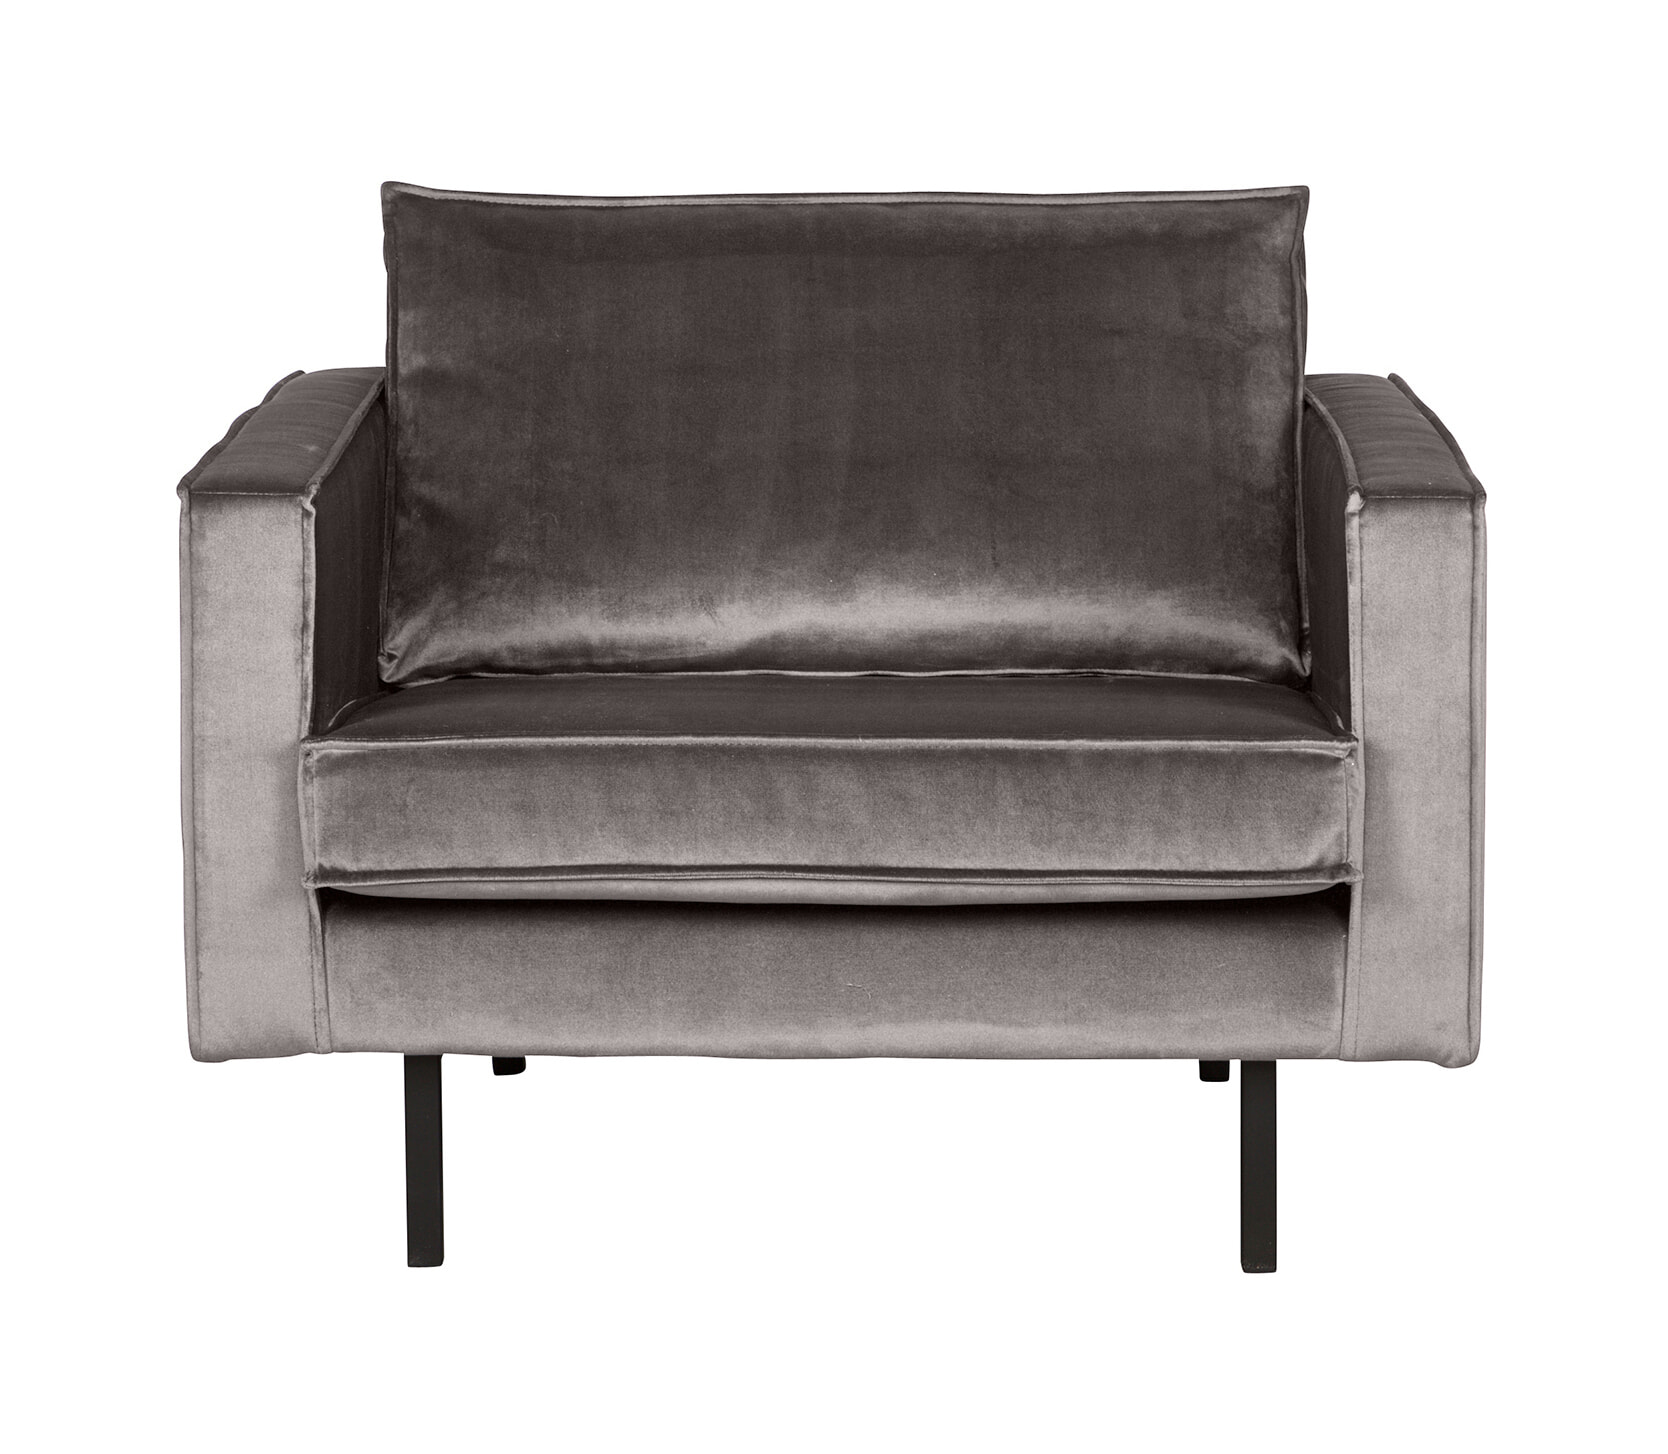 BePureHome Fauteuil 'Rodeo' Velours, kleur Taupe